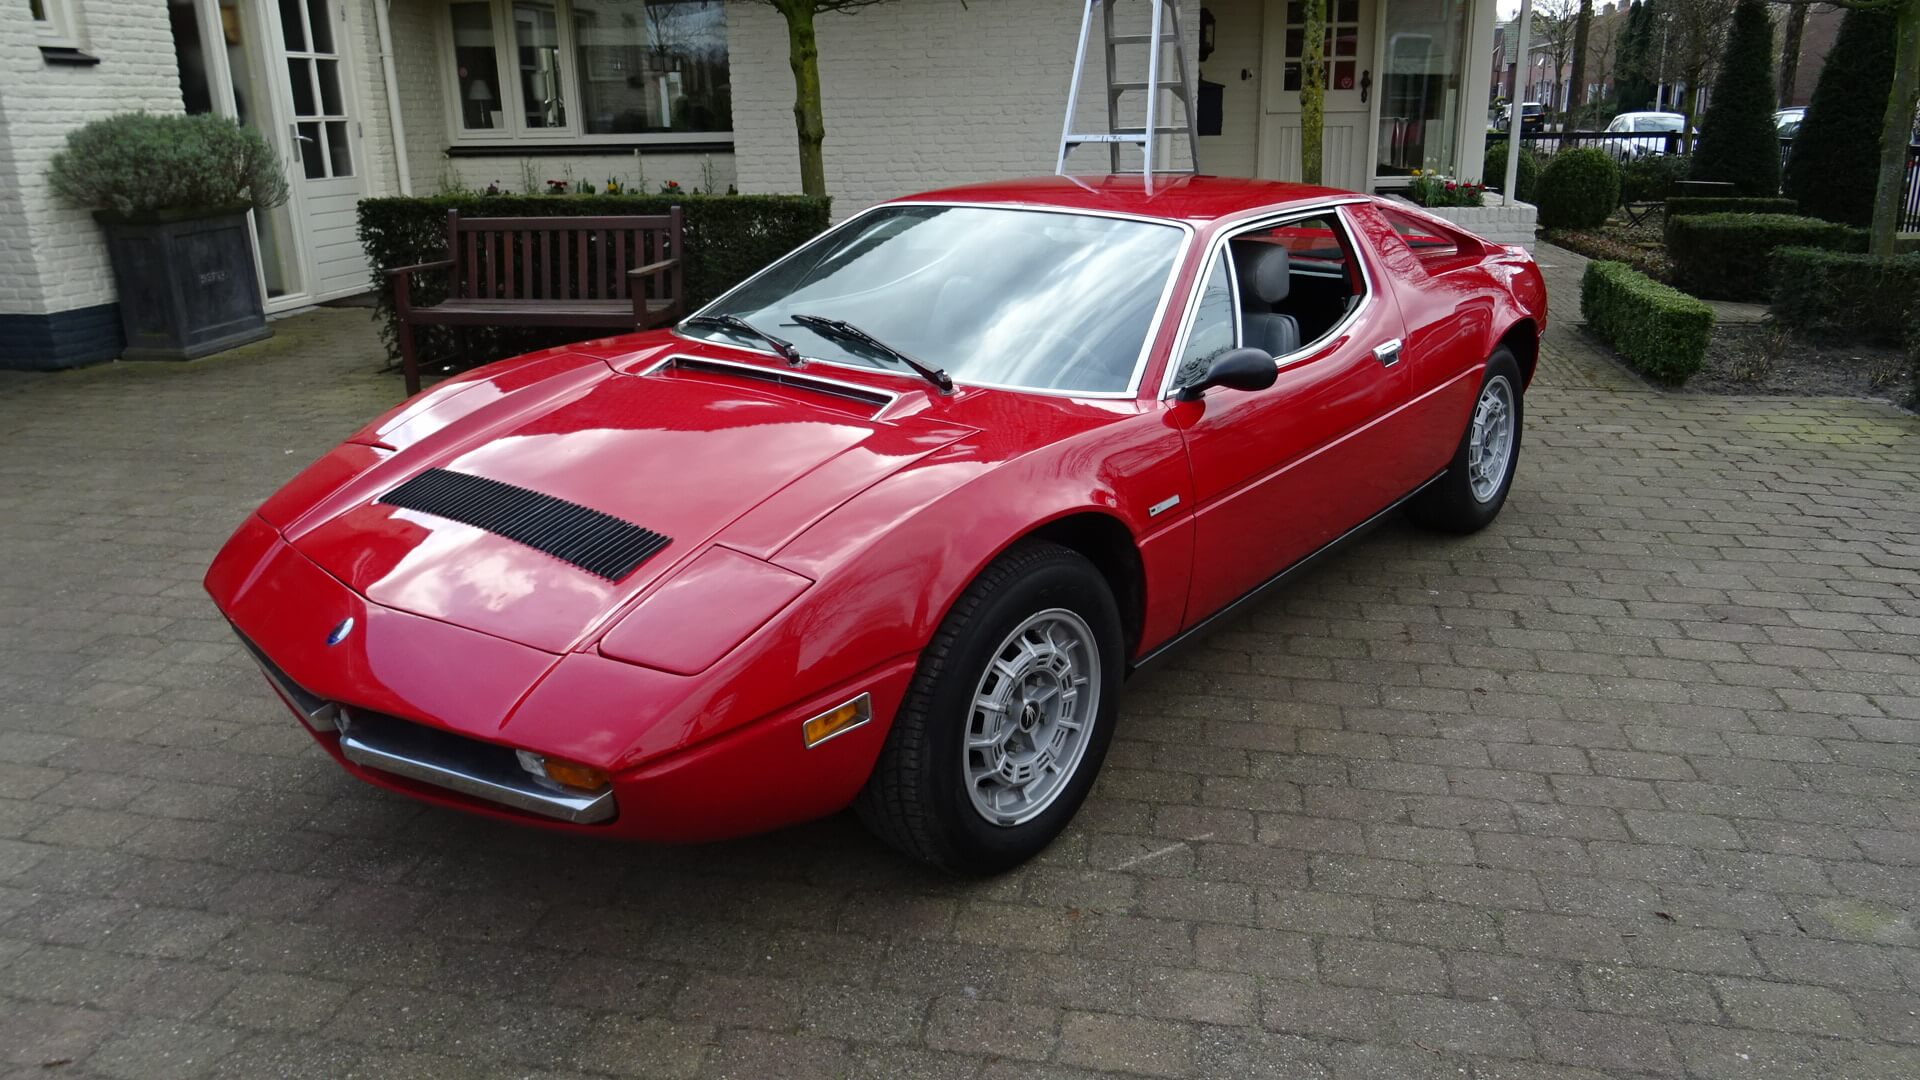 Mercedes Benz Parts >> '73 Maserati Merak - Union Jack Vintage Cars